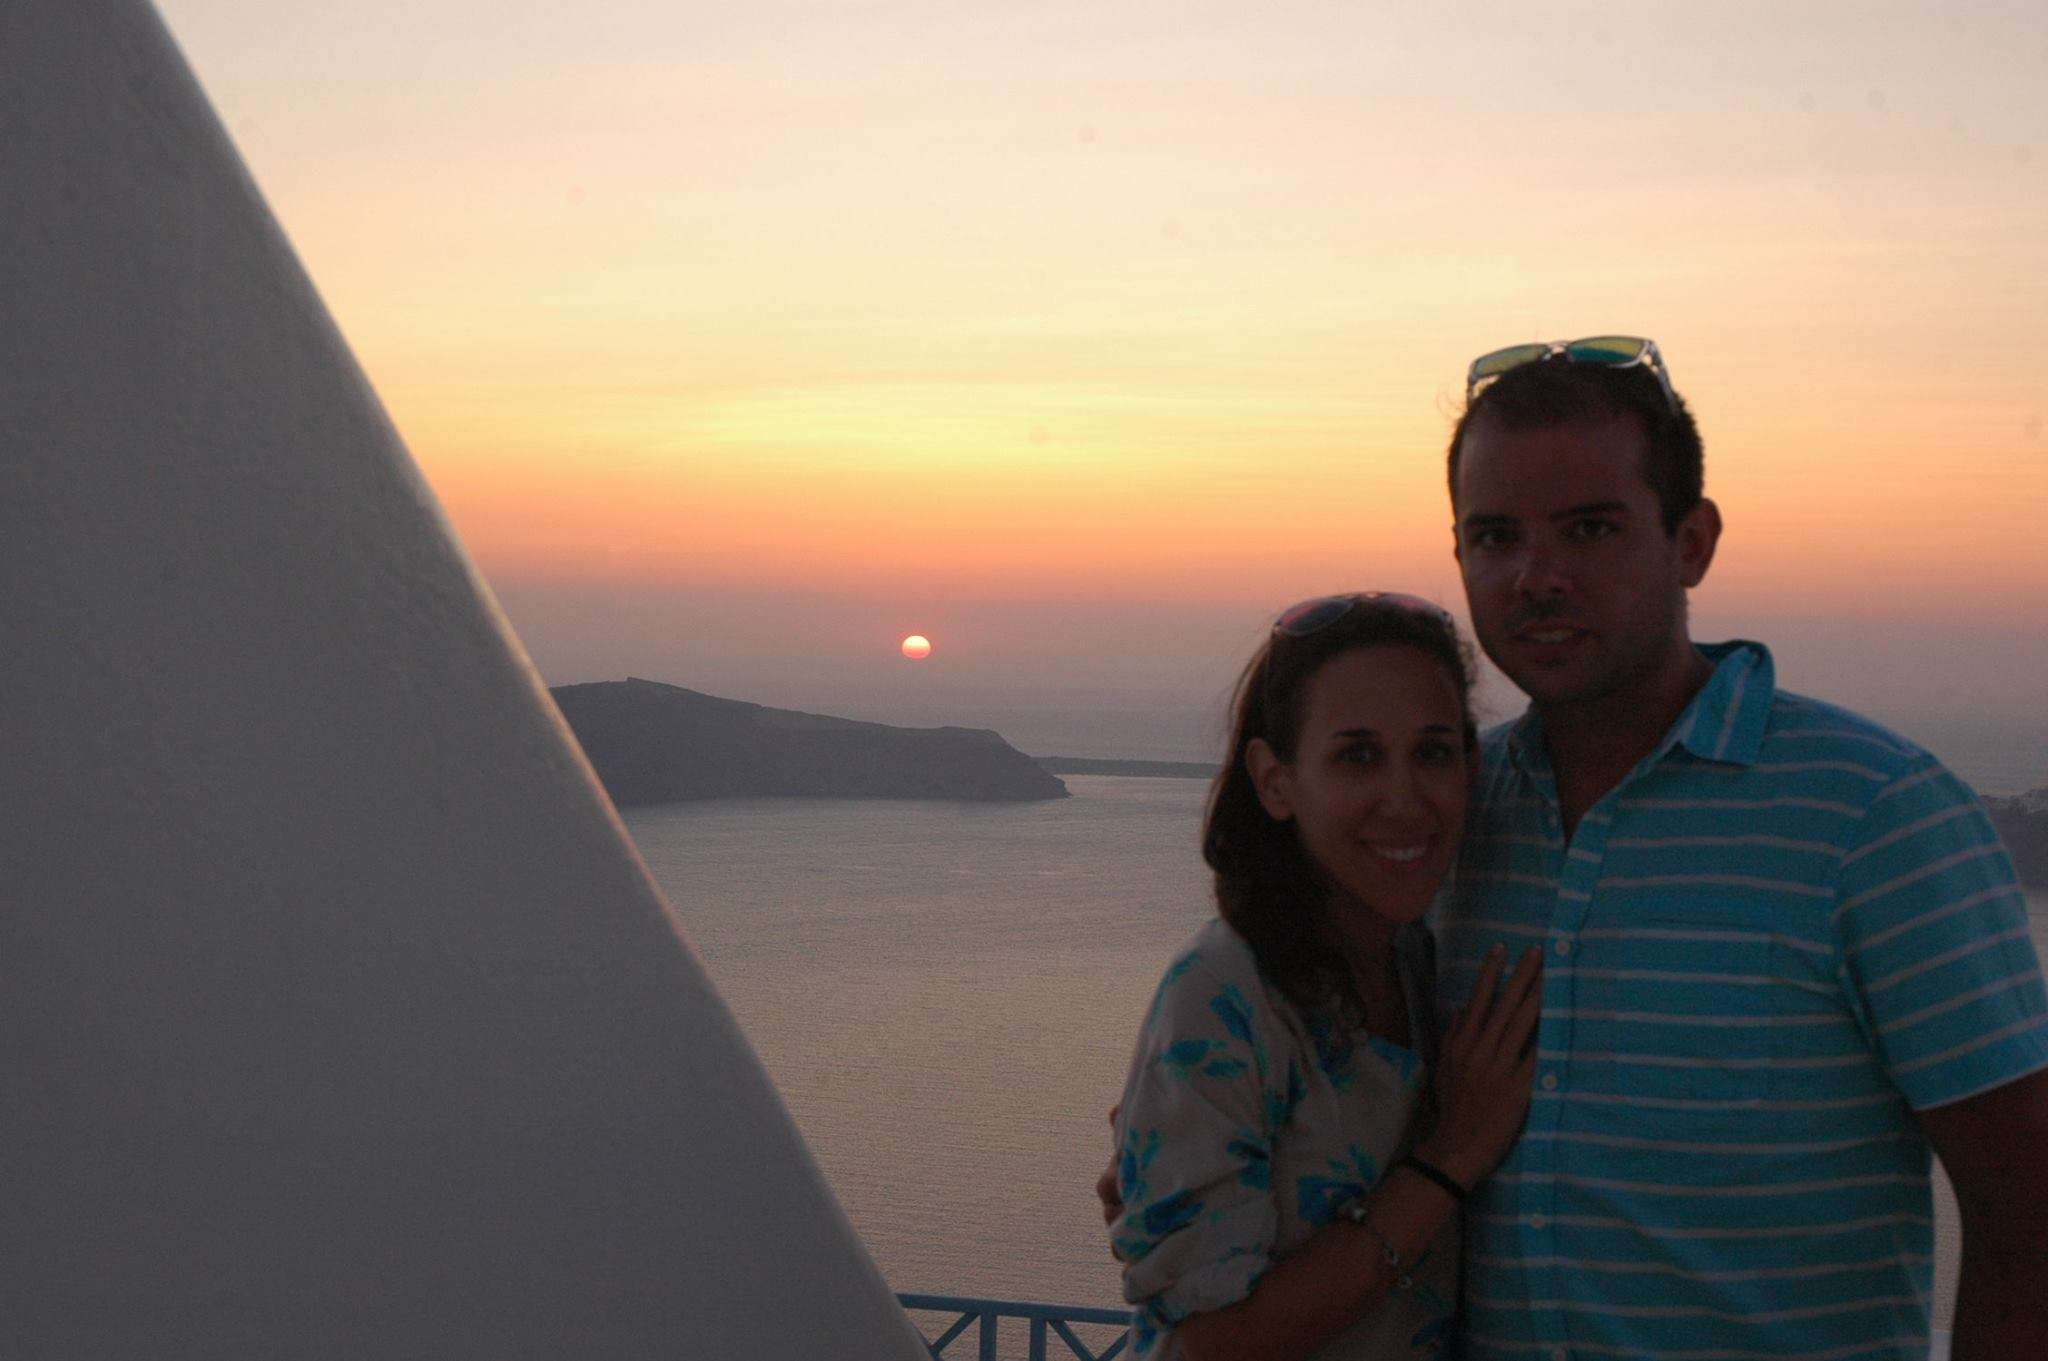 Capturing a couple's sunset shot from Absolute Bliss Hotel in Santorini